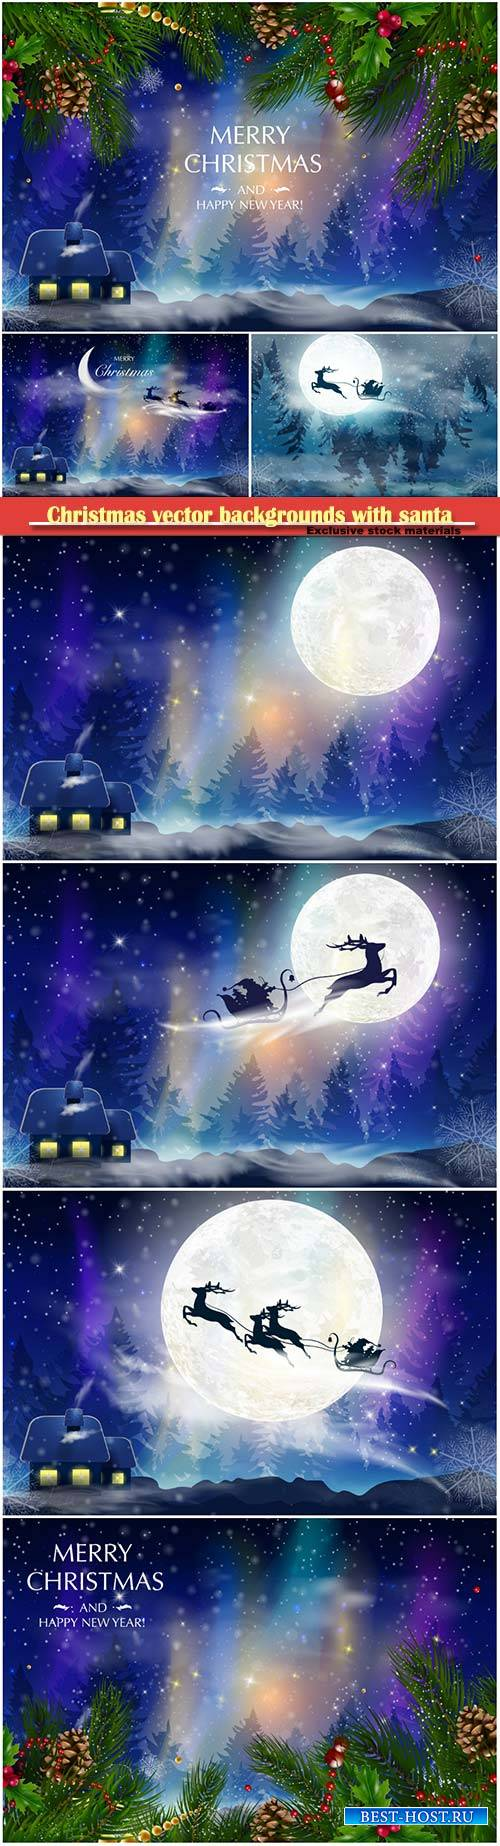 Christmas vector backgrounds with santa and deer flying through the sky